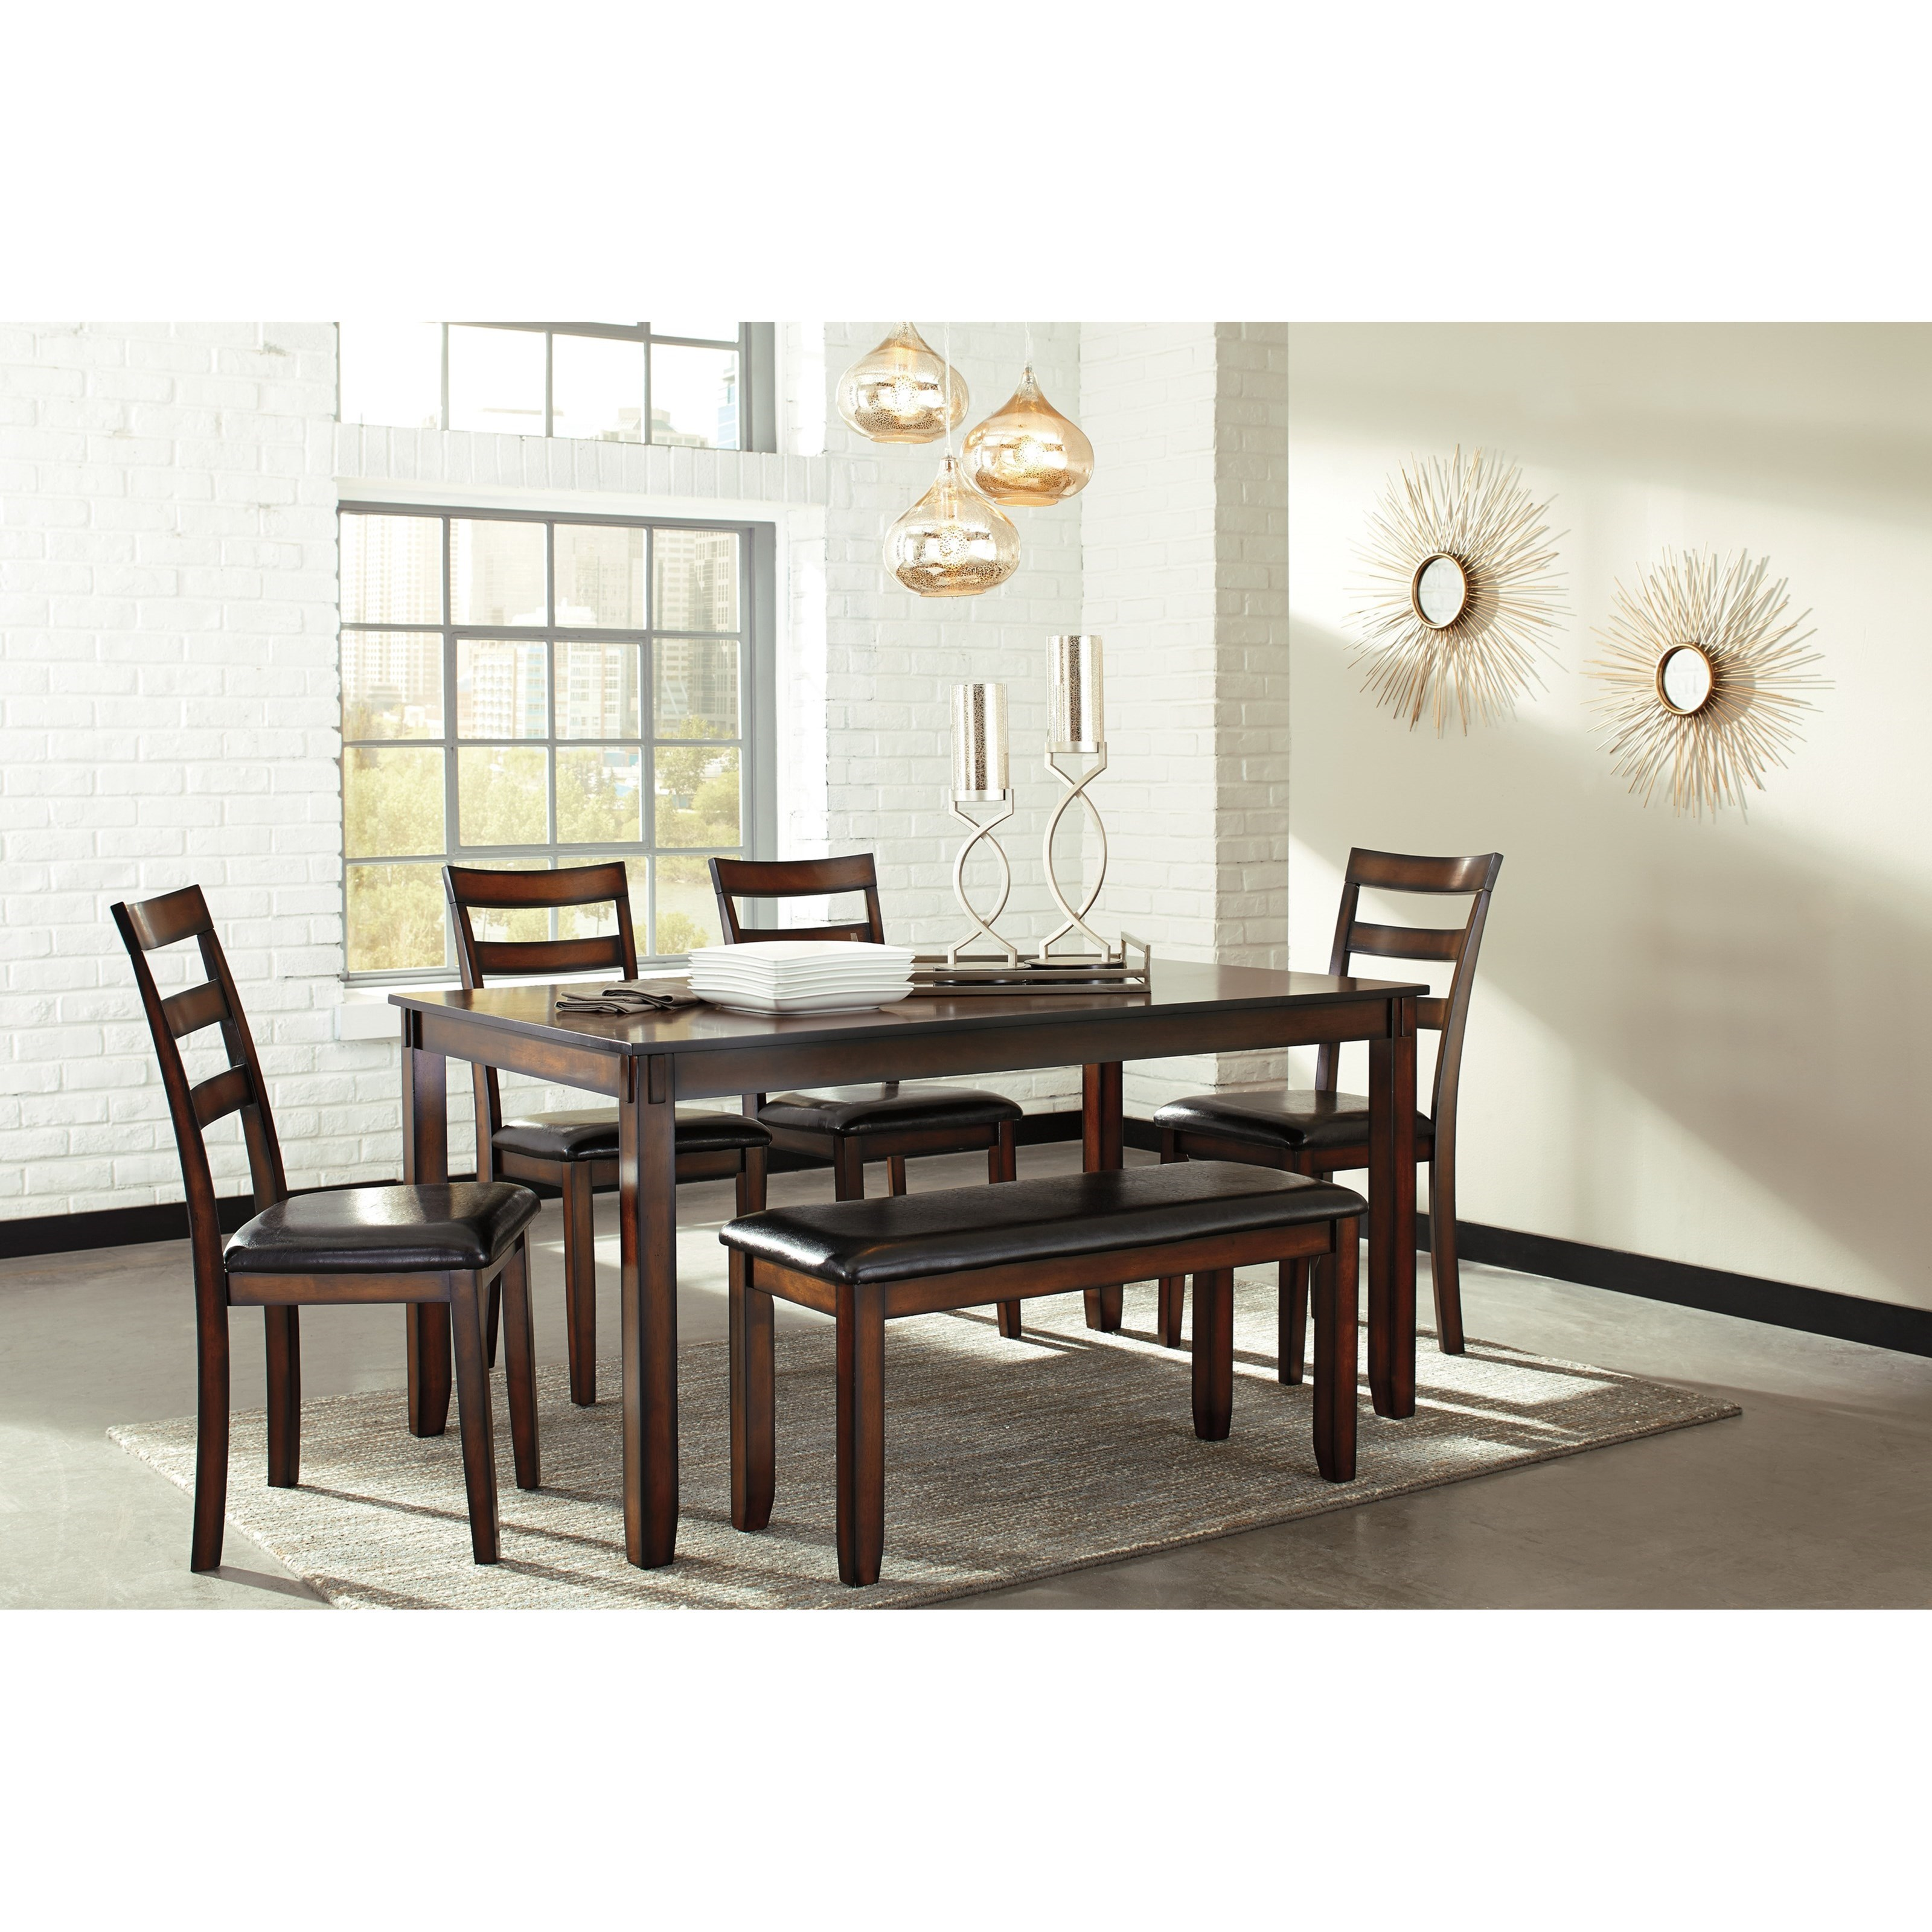 Ashley Furniture Dining Room Table: Ashley Signature Design Coviar D385-325 Burnished Brown 6